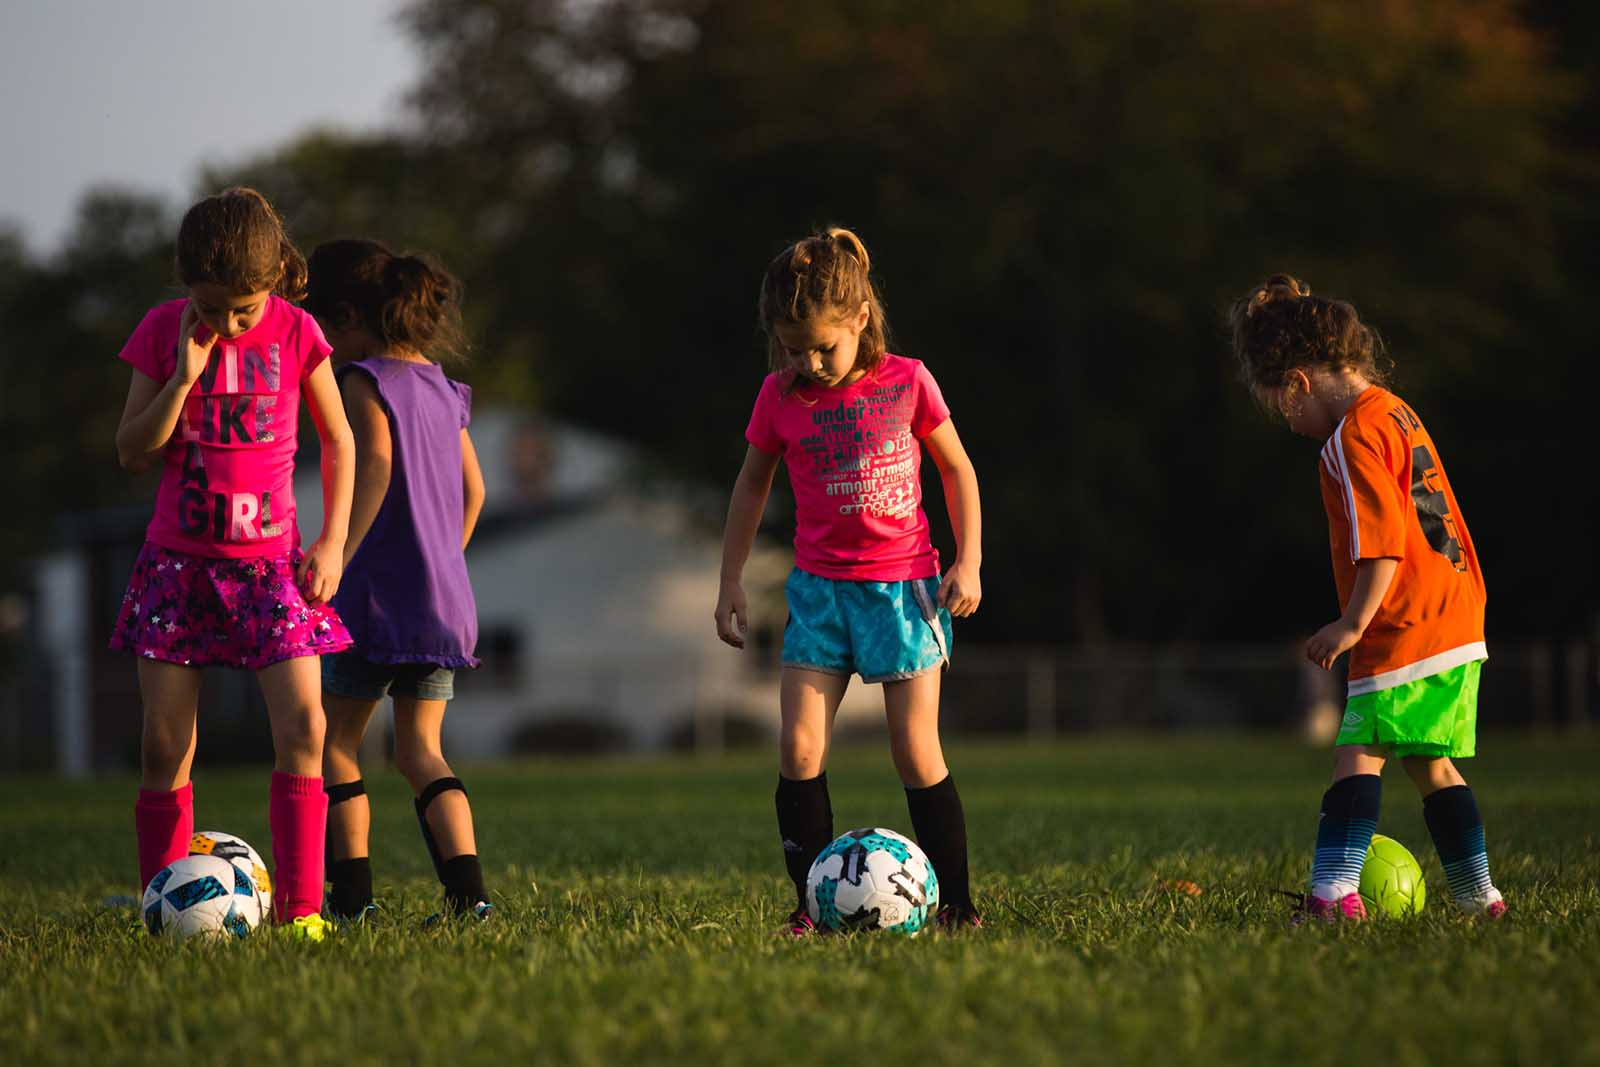 Kids playing soccer - a good place for in-person marketing